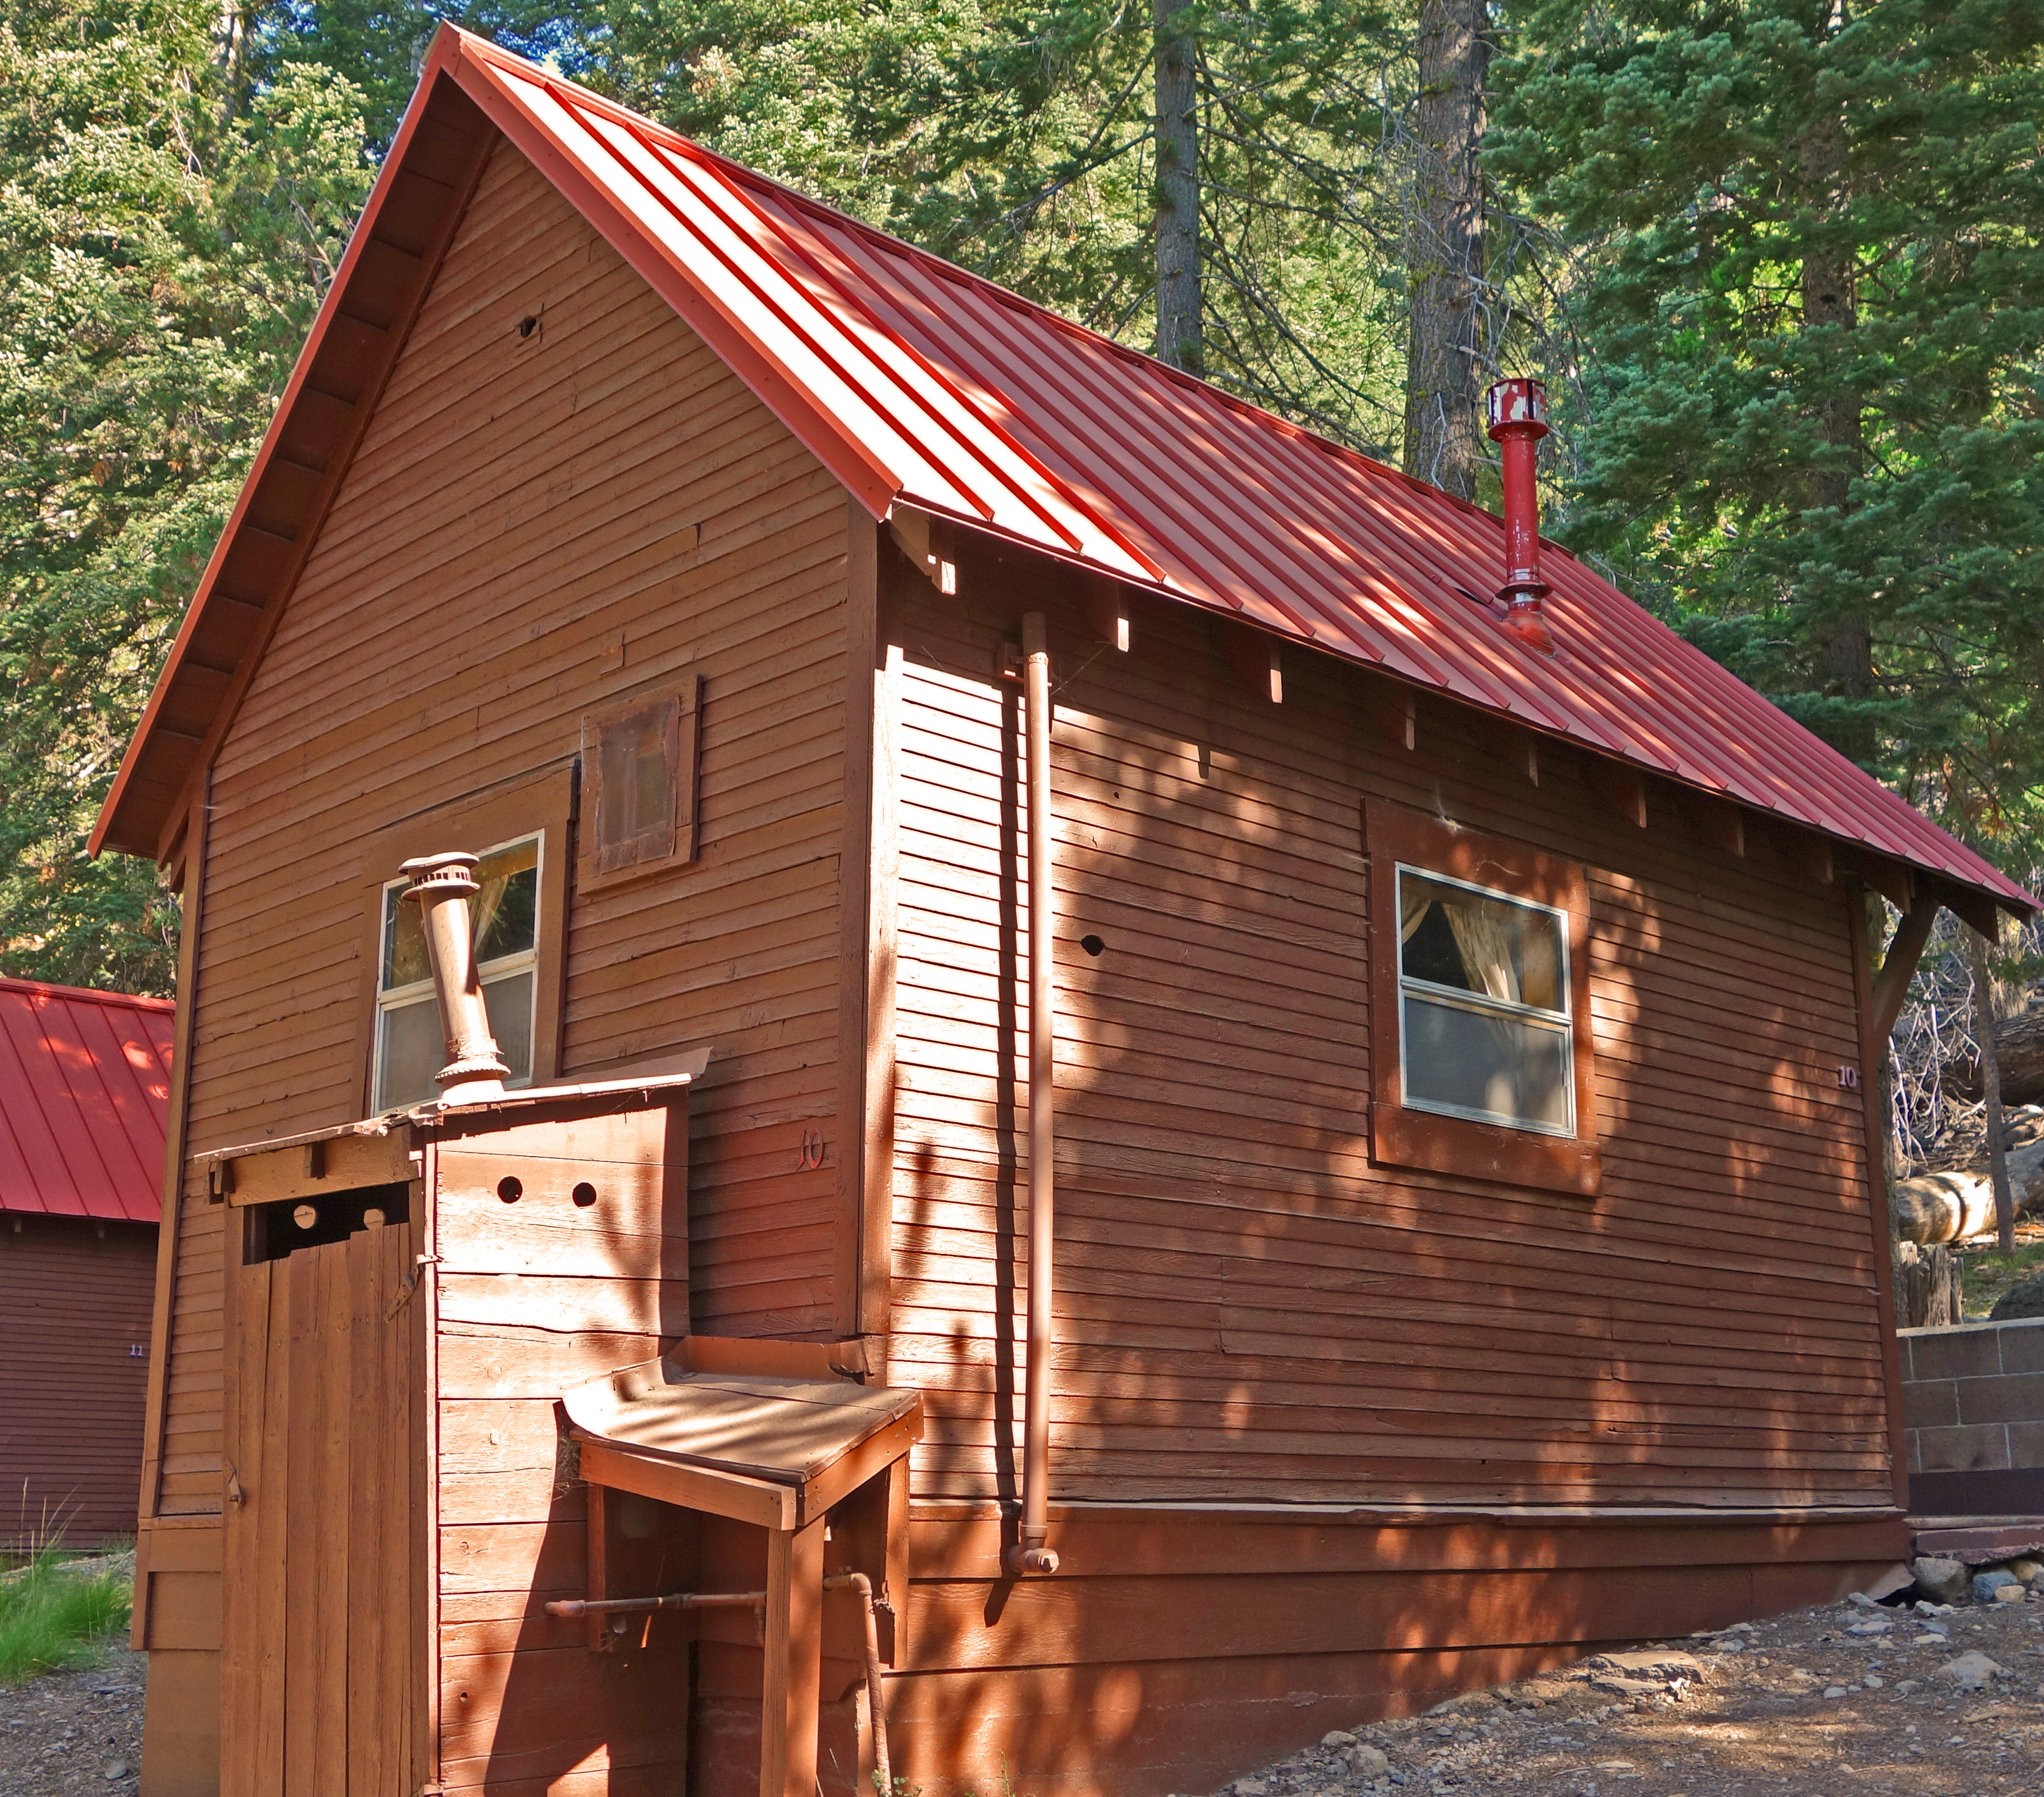 california visalia type lodging cabins koa sequoia national park site campgrounds